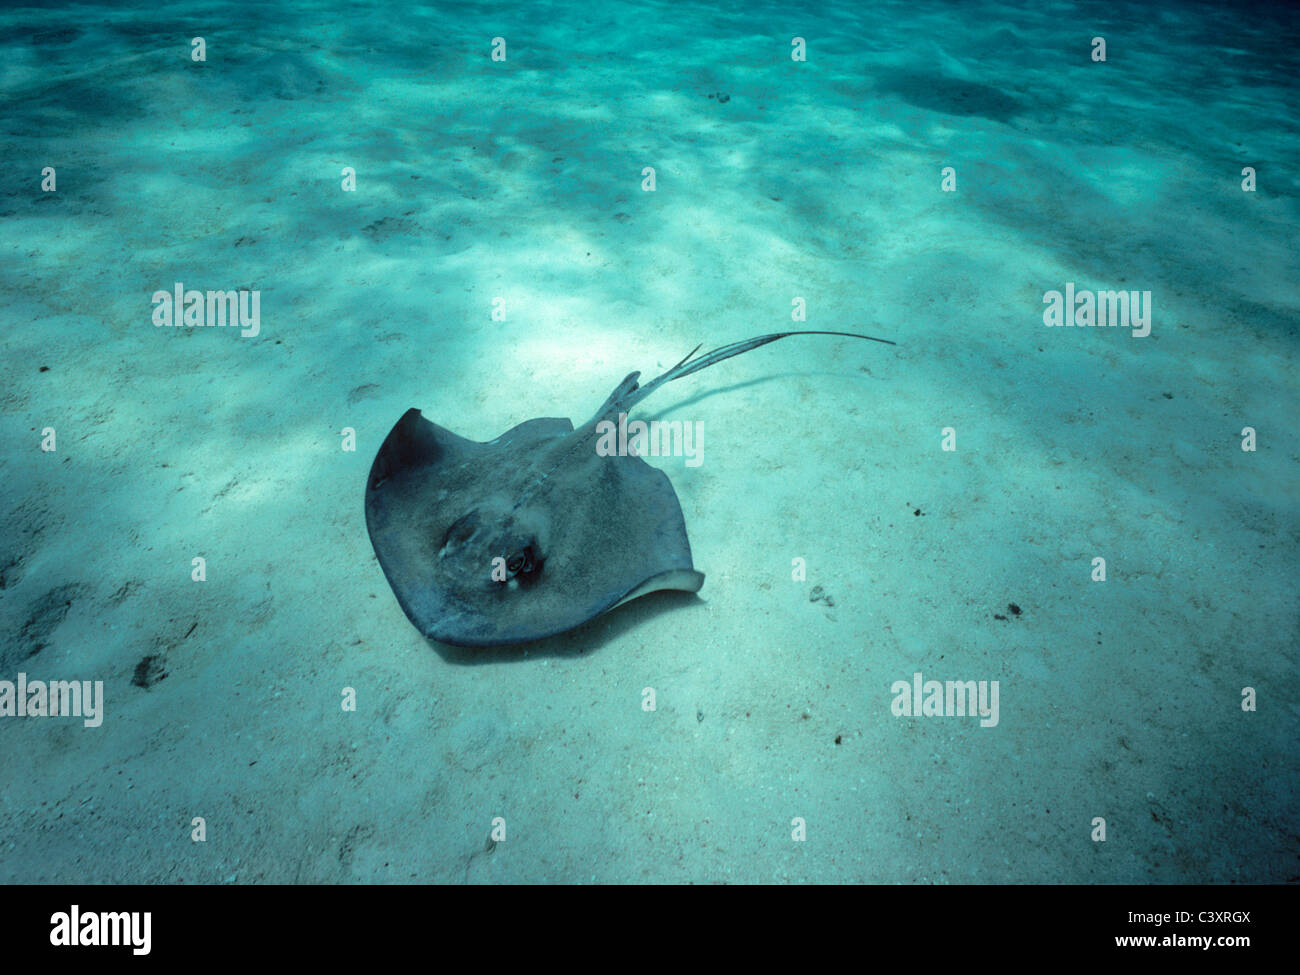 Southern Stingray (Dasyatis americana) swimming on a sandy bottom. Stingray City, Grand Cayman Island, Caribbean - Stock Image